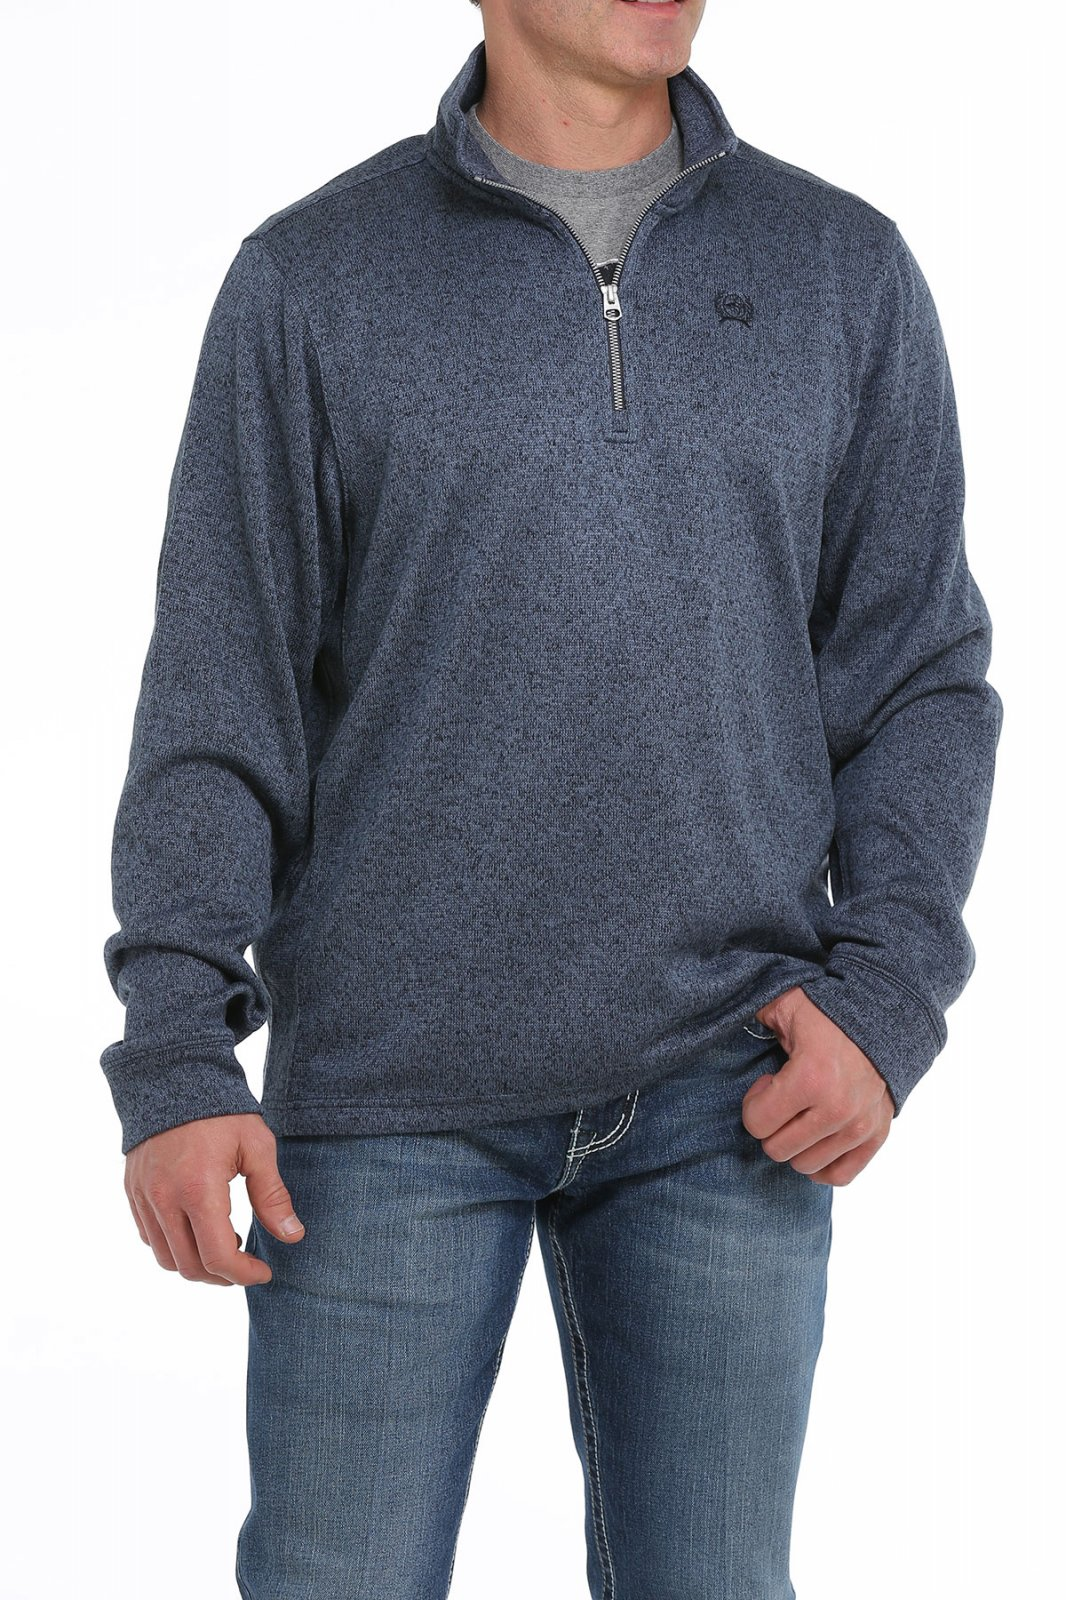 1/4 Zip Pullover from Cinch